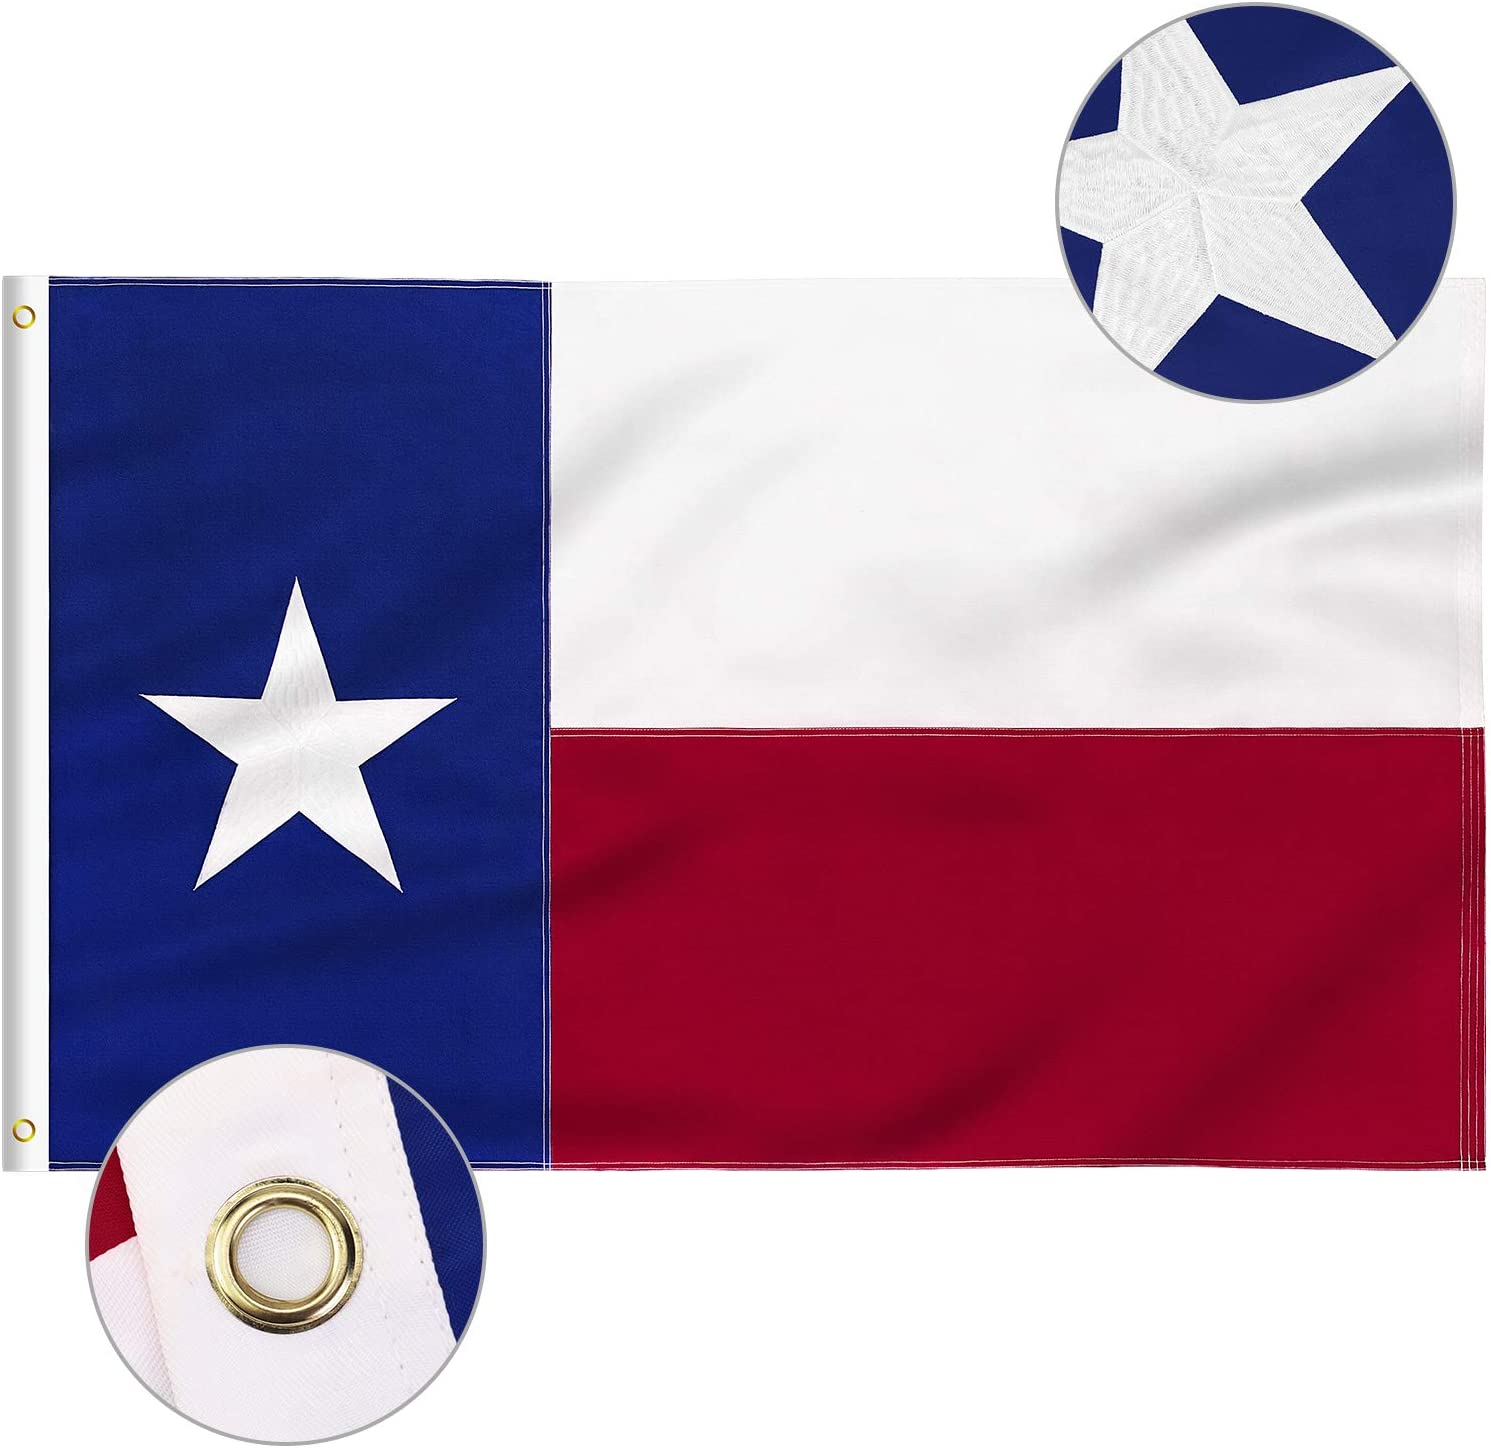 FLAGBURG Texas Flag 3x5 FT, TX Flags with Embroidered Star, Sewn Stripes (Not Print), Canvas Header & Brass Grommets, 100% High-Grade Outdoor Nylon for All-Weather Outdoor Display